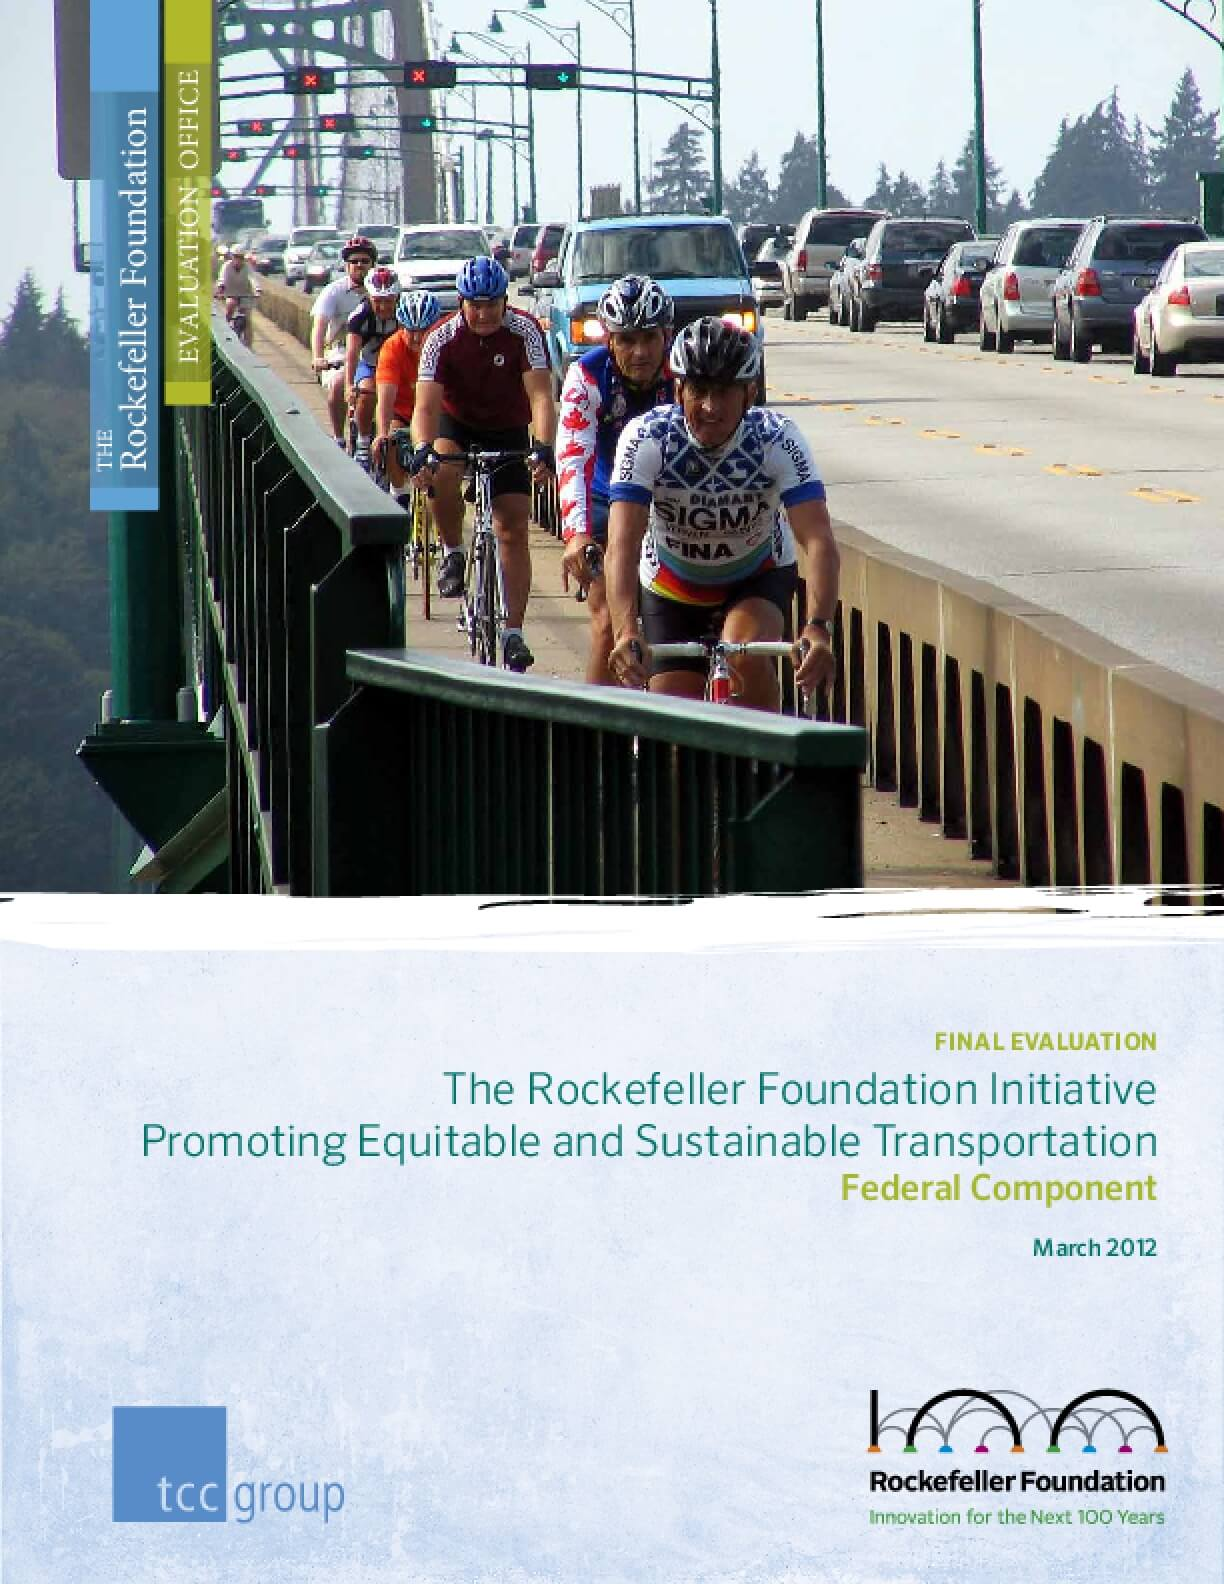 The Rockefeller Foundation Initiative Promoting Equitable and Sustainable Transportation Federal Component: Final Evaluation